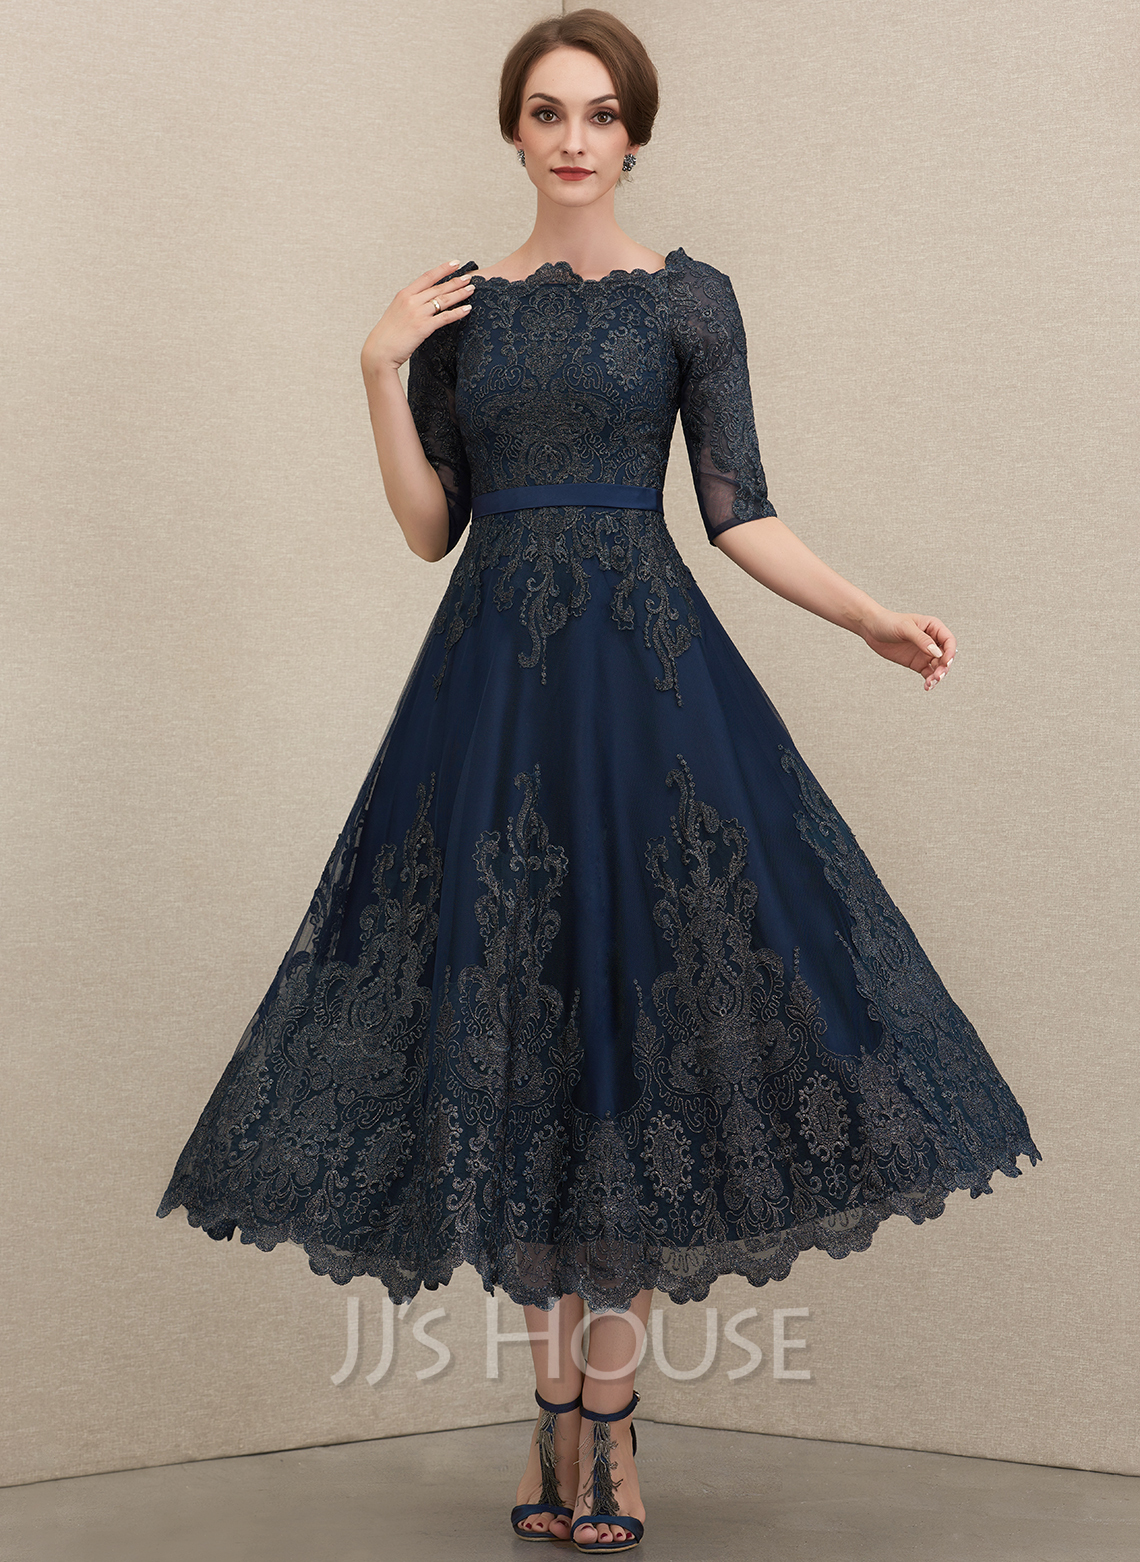 A-Line Scoop Neck Tea-Length Lace Mother of the Bride Dress